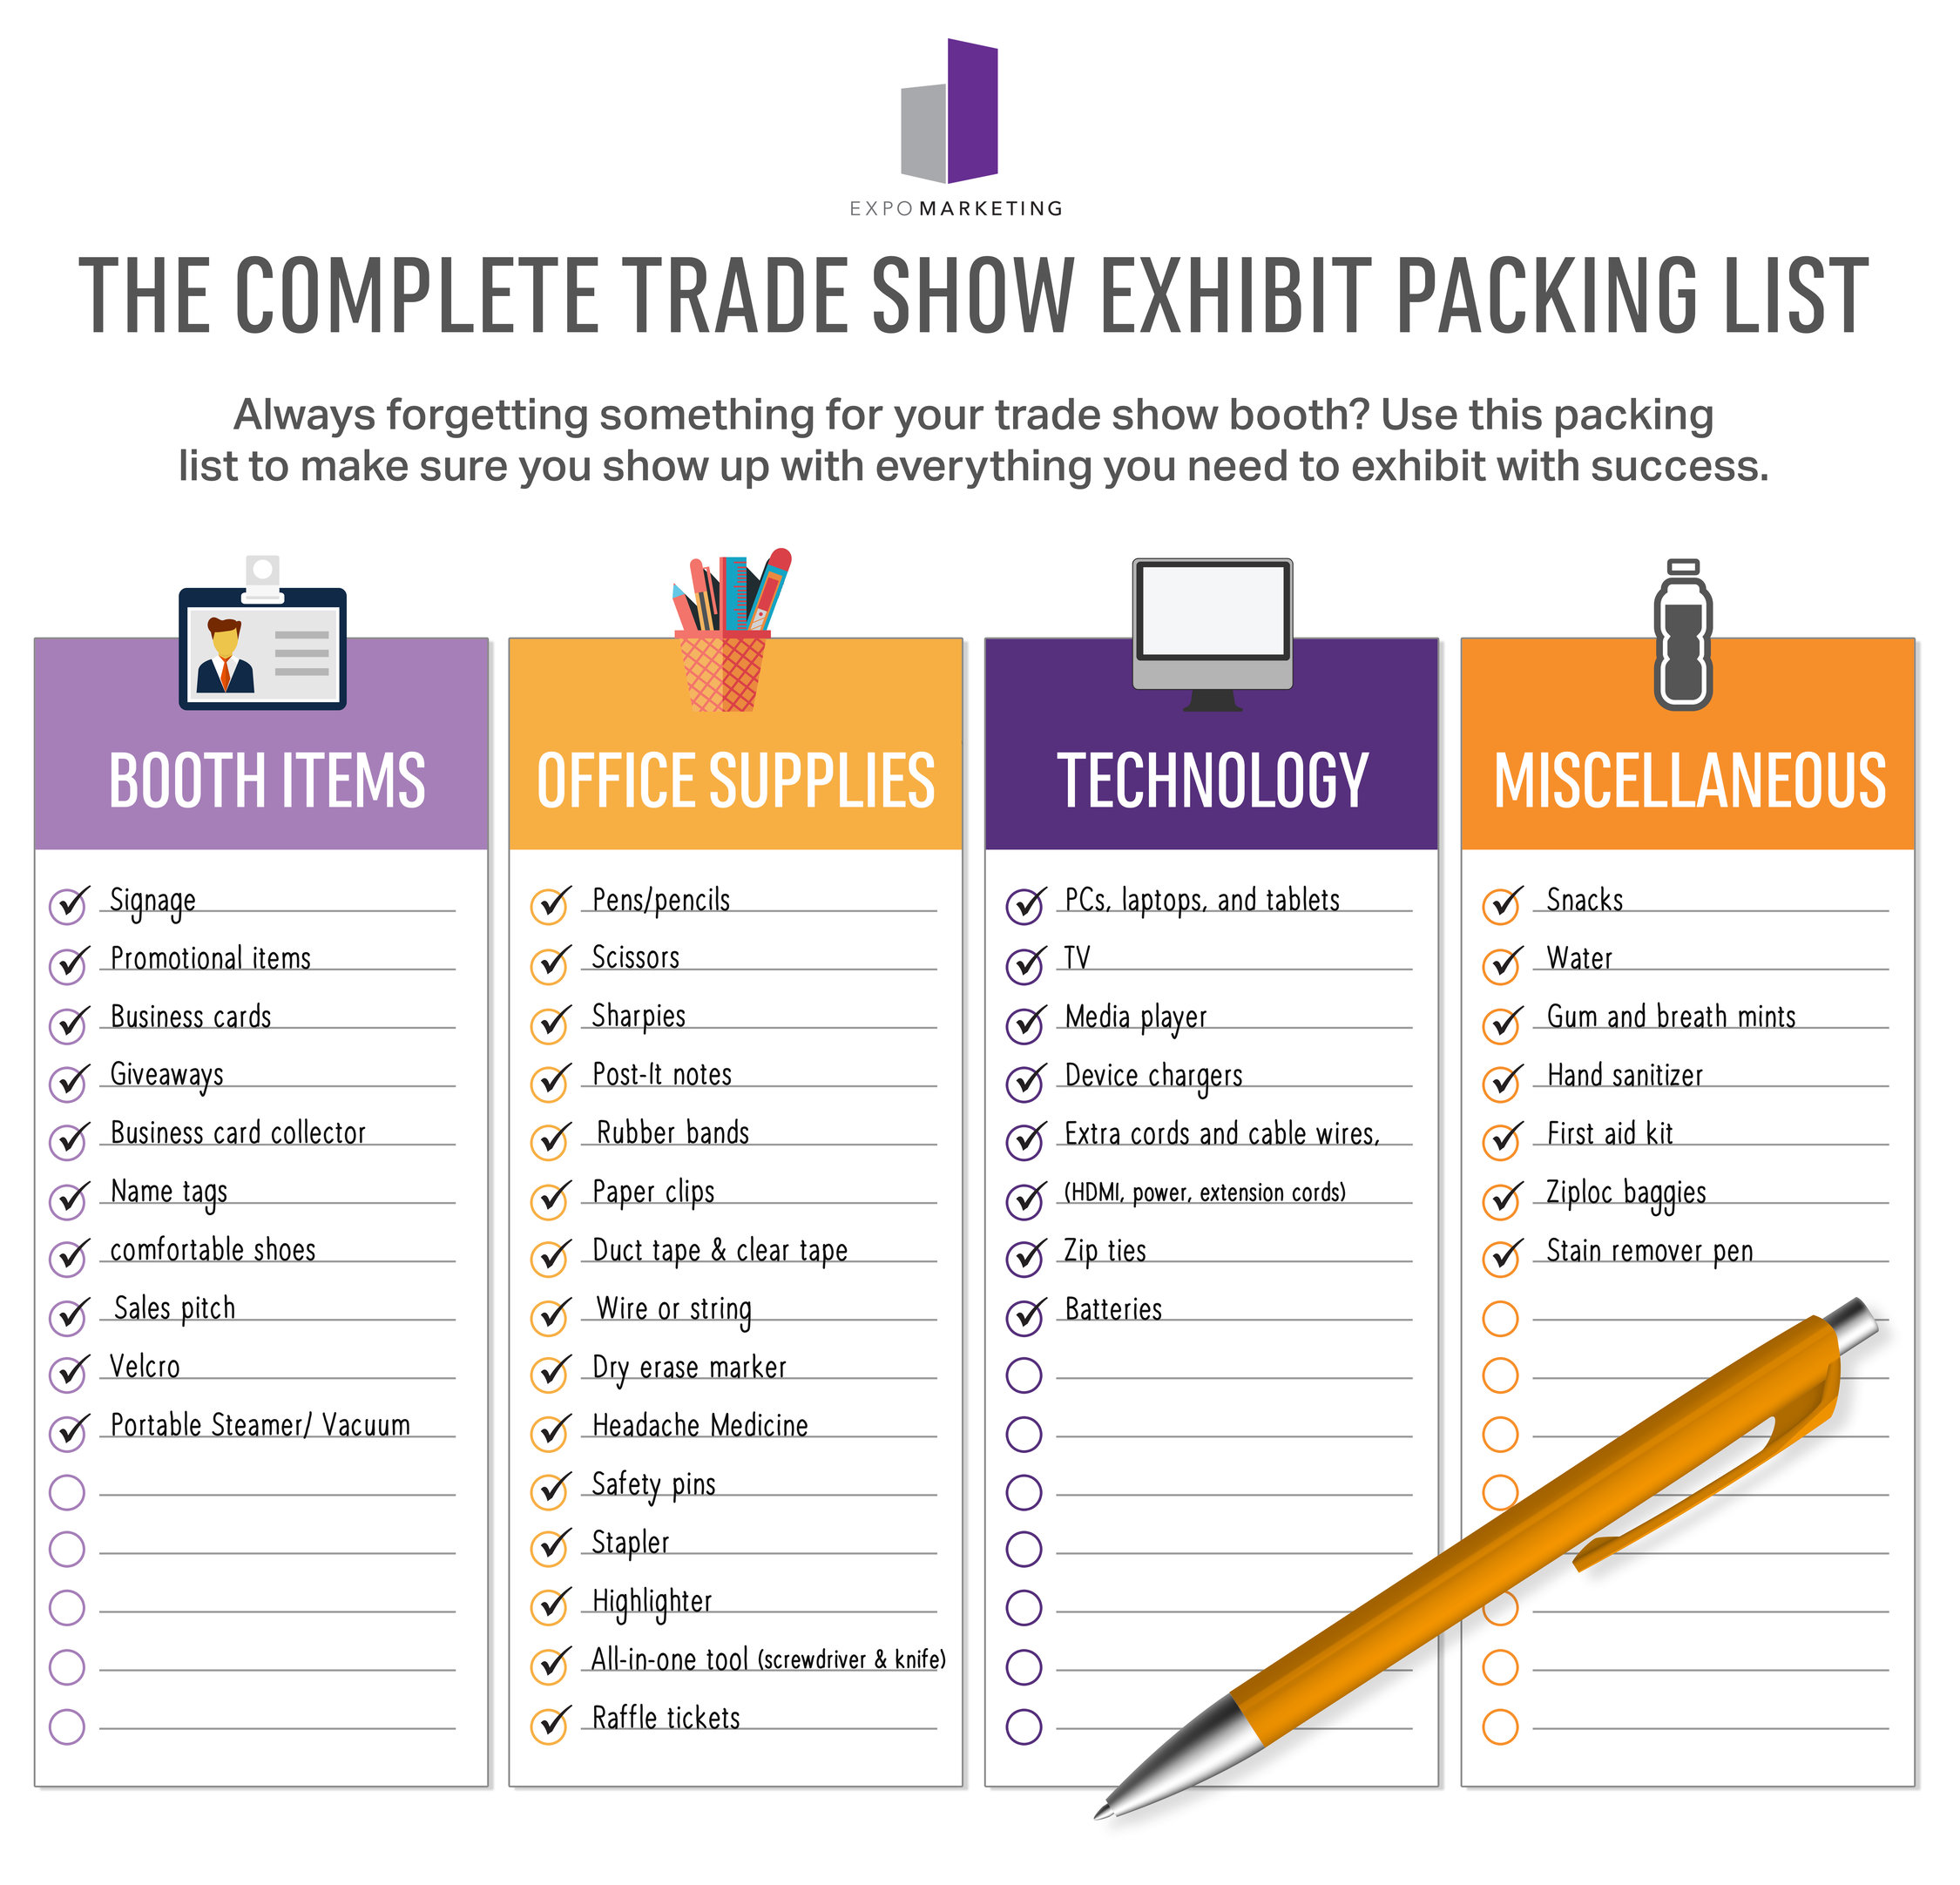 The Complete Trade Show Exhibit Packing List Infographic